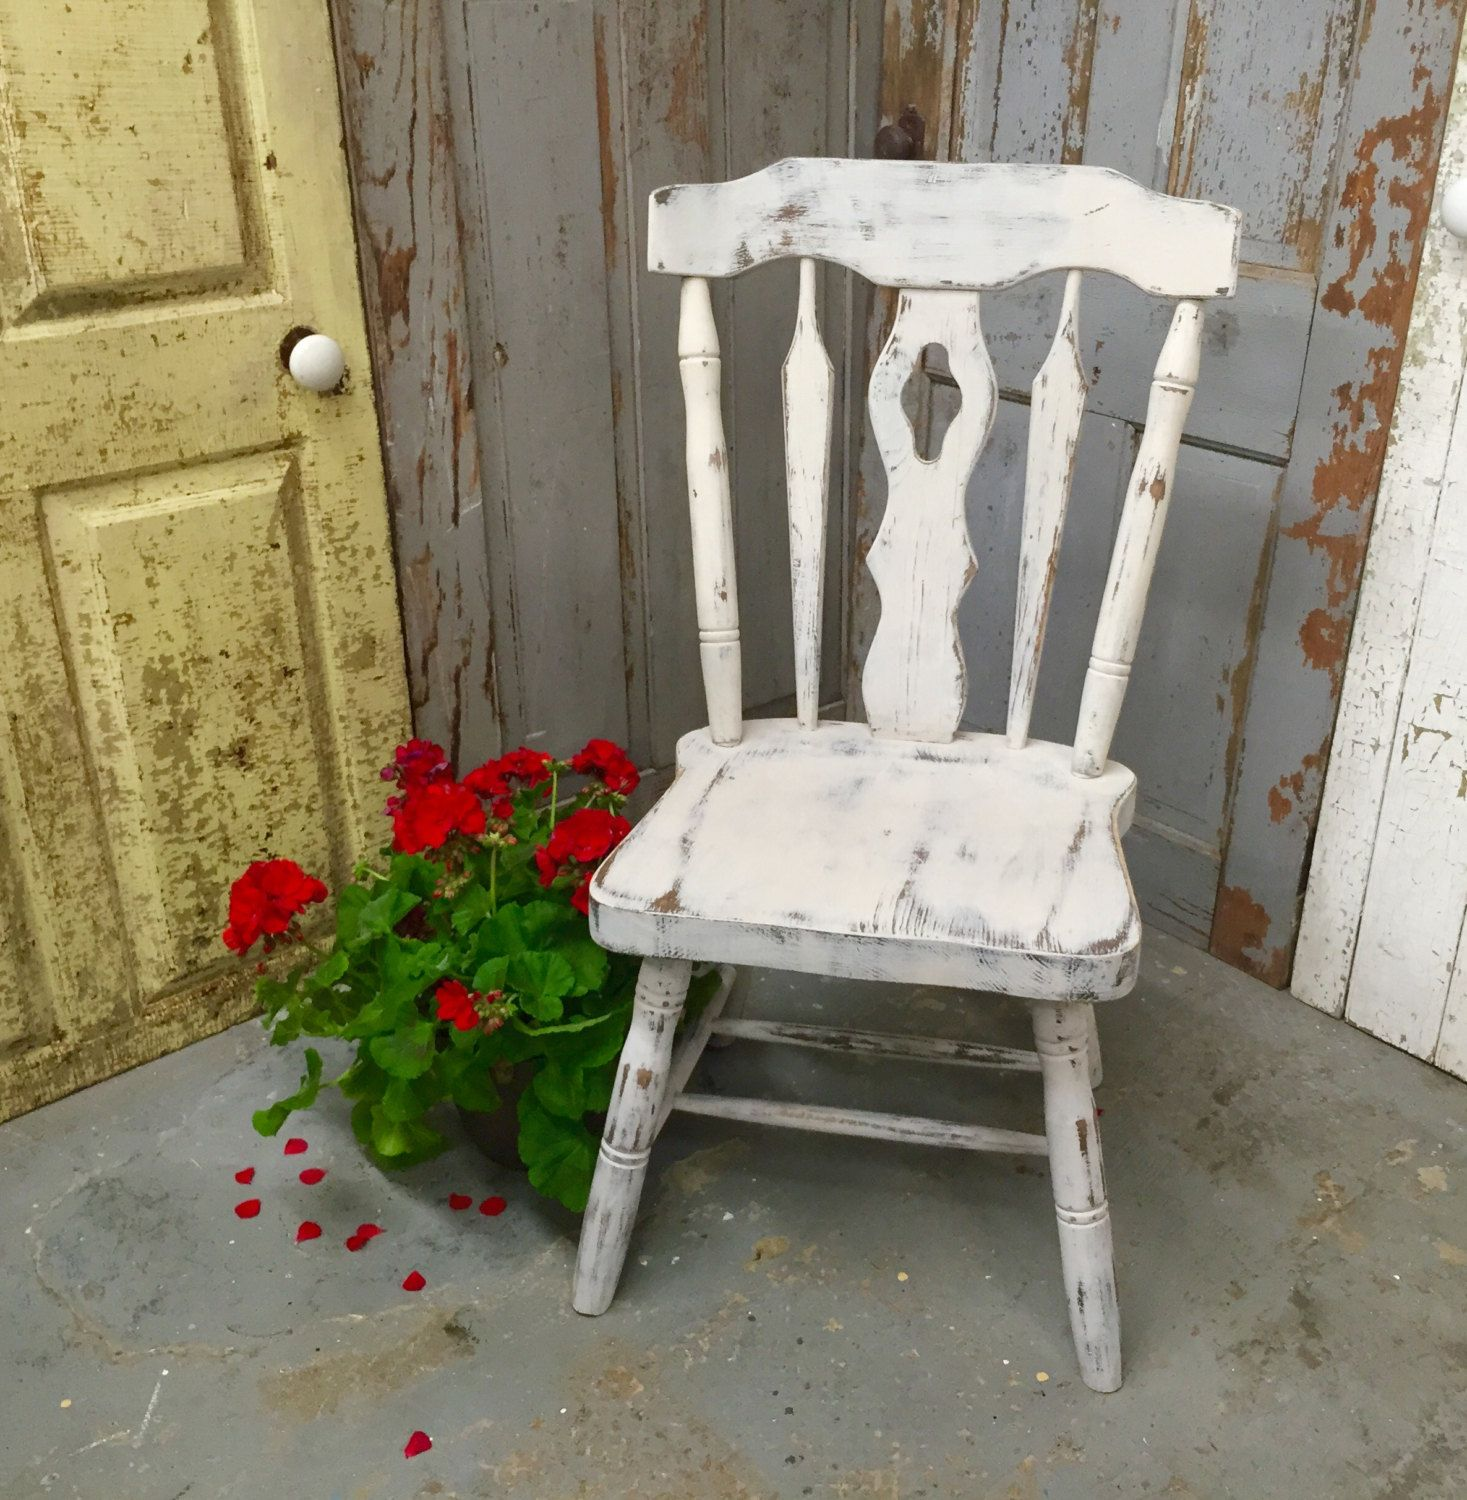 Gray Accent Chair Vintage Wood Chair Country Chic Distressed Painted Furniture Shabby Ch Shabby Chic Chairs Shabby Chic Furniture Diy Shabby Chic Furniture